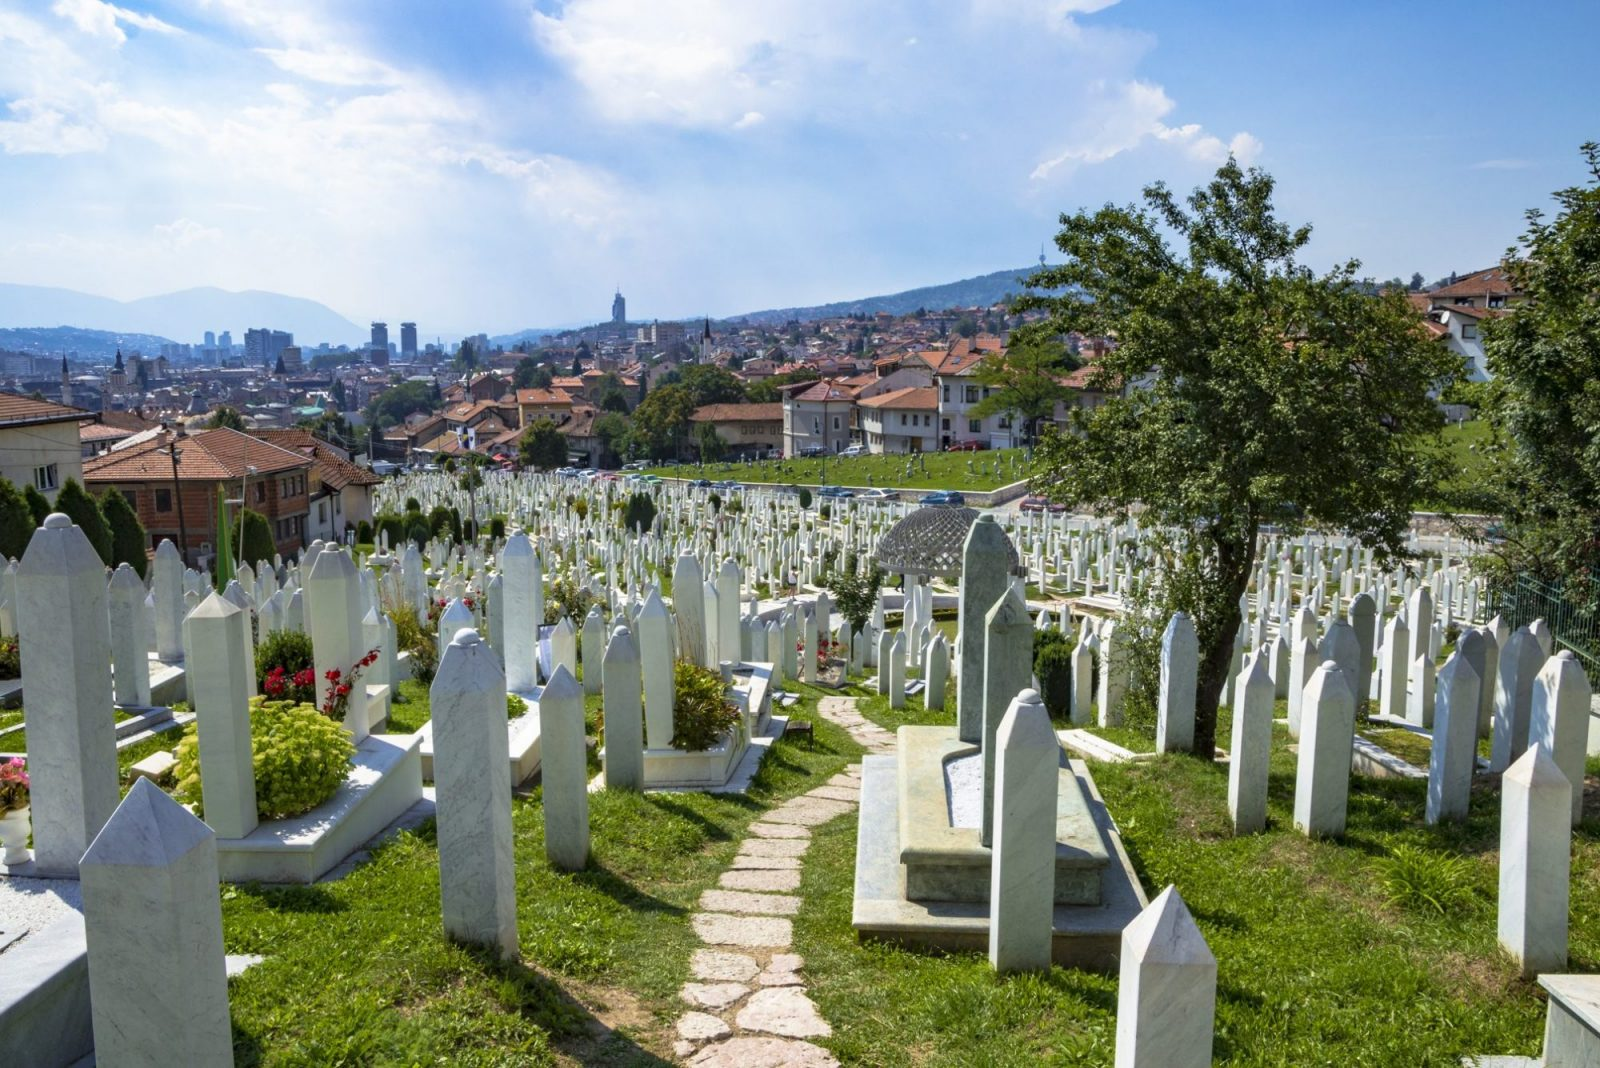 visit a cemetary and pay homage to the fallen in Sarajevo, things to do in Bosnia